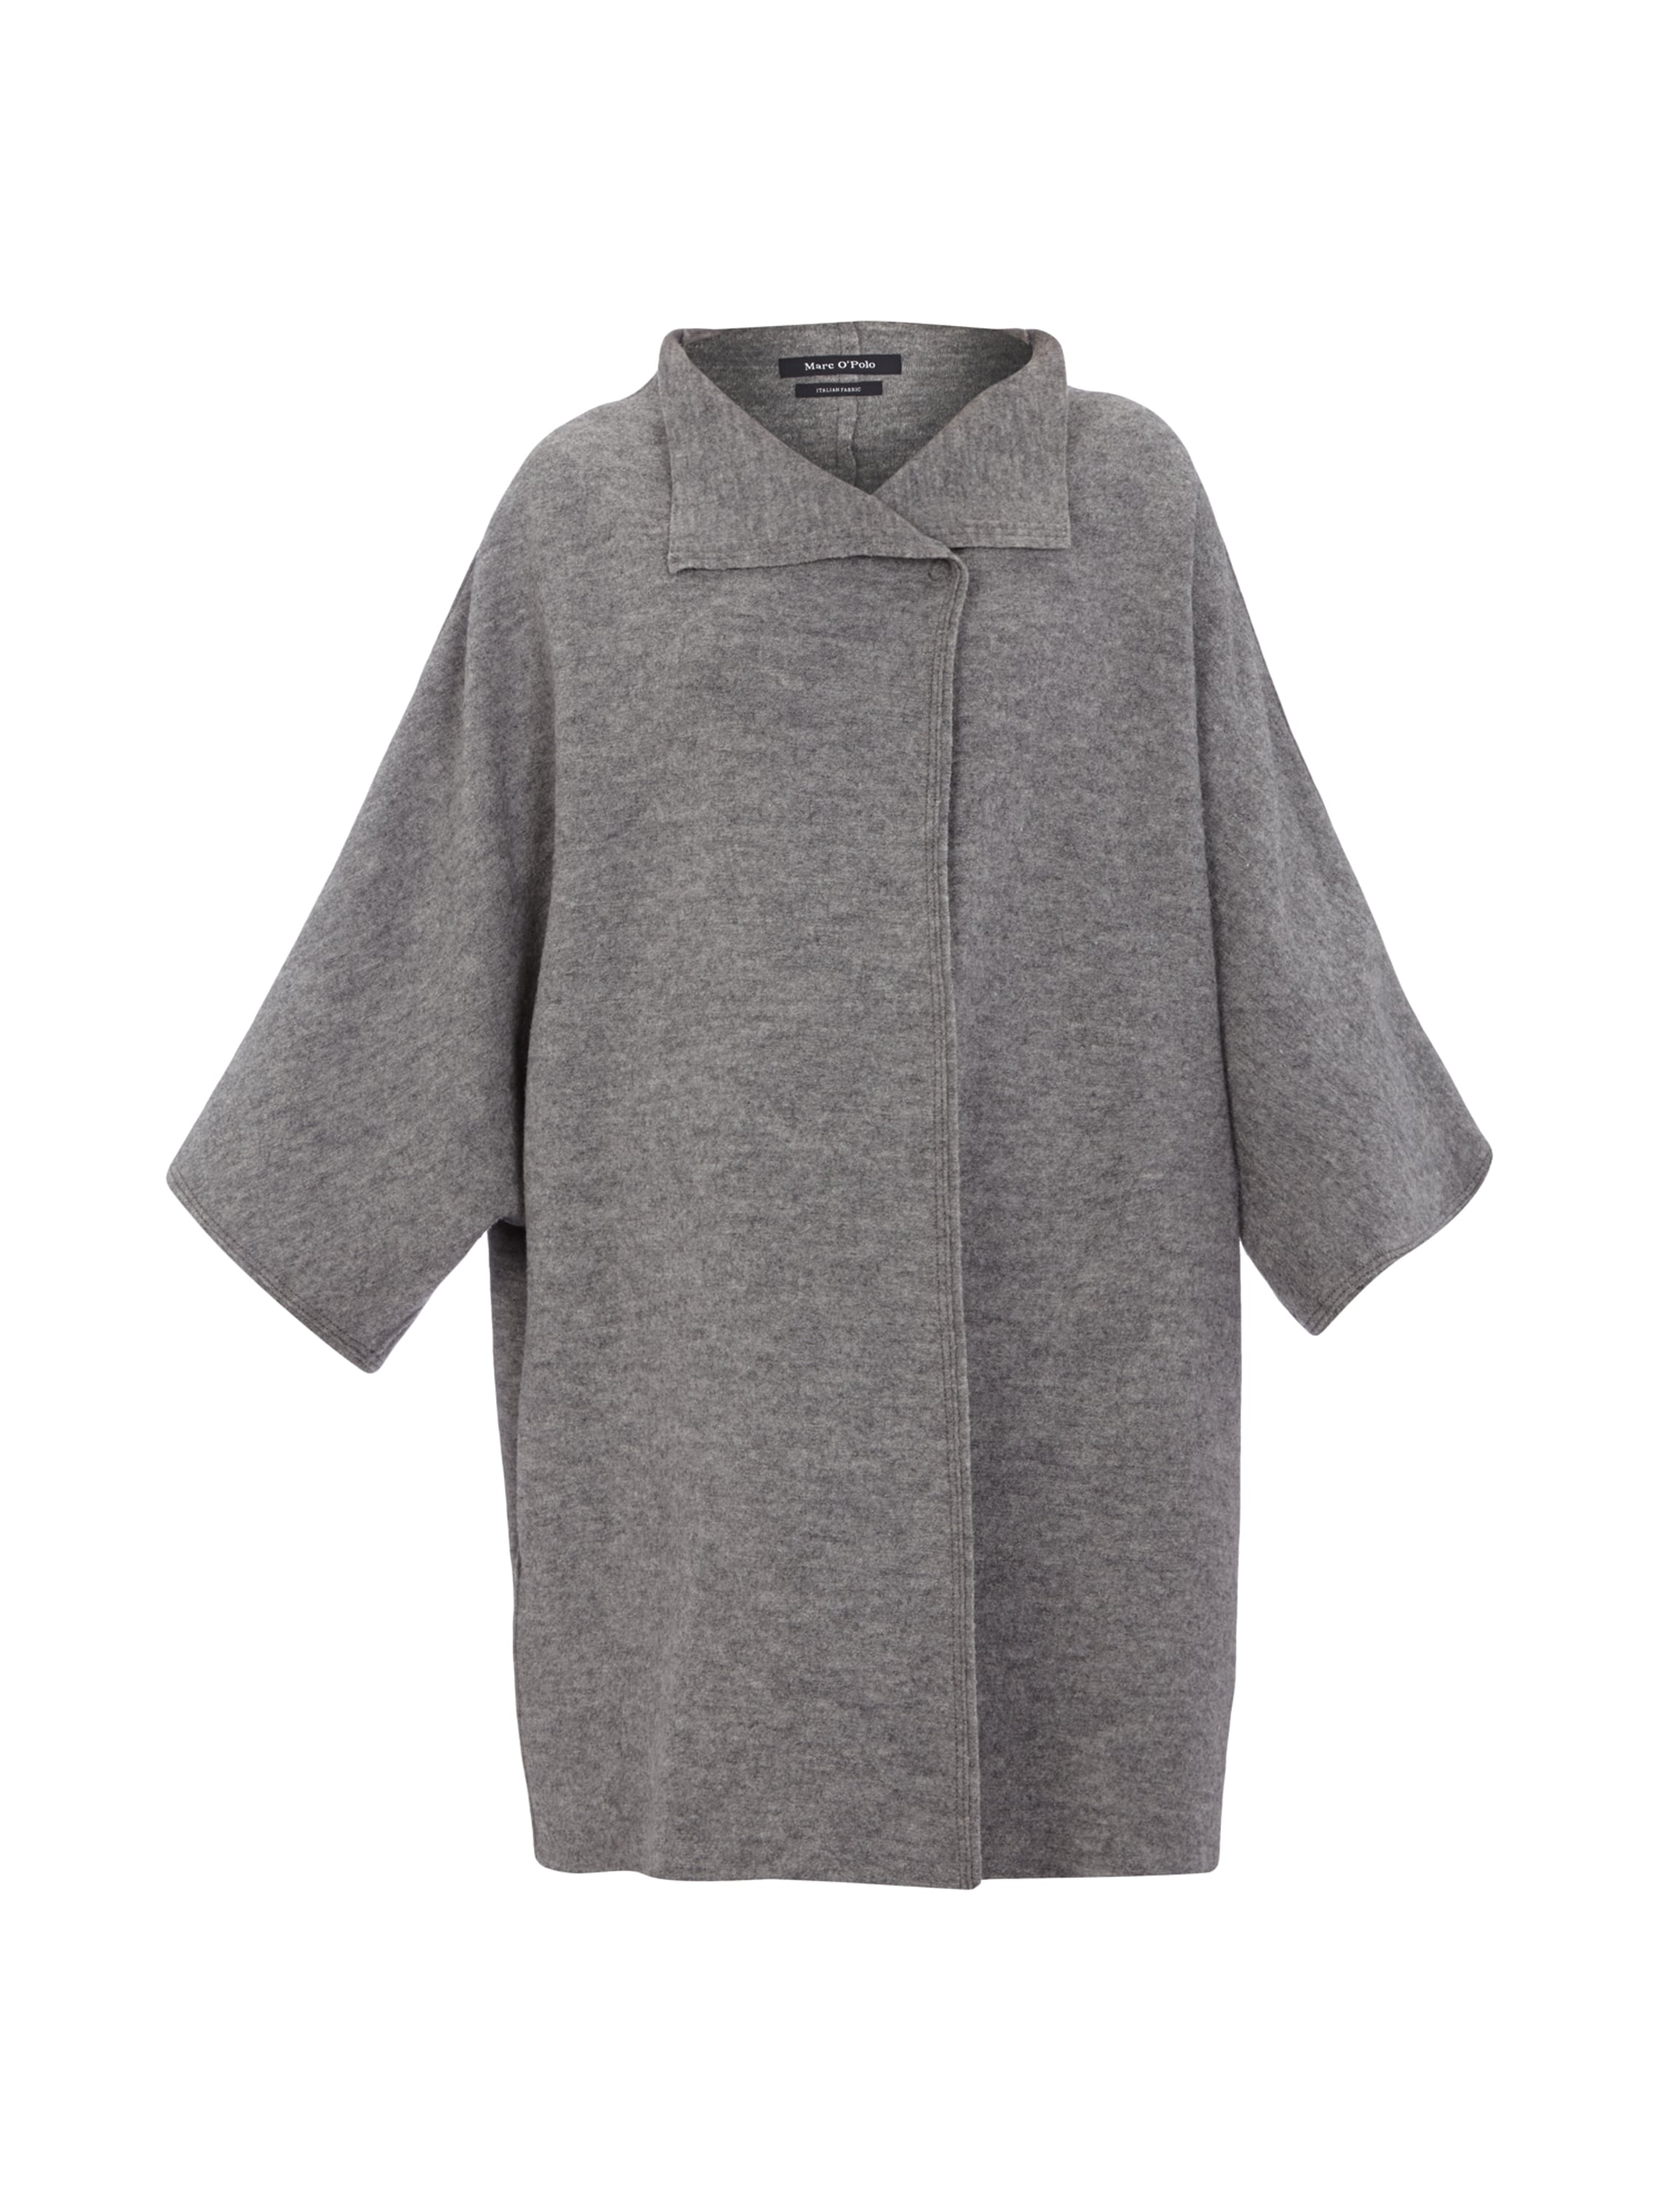 Marc o polo oversize mantel aus reiner wolle in grau for Oversize mantel damen